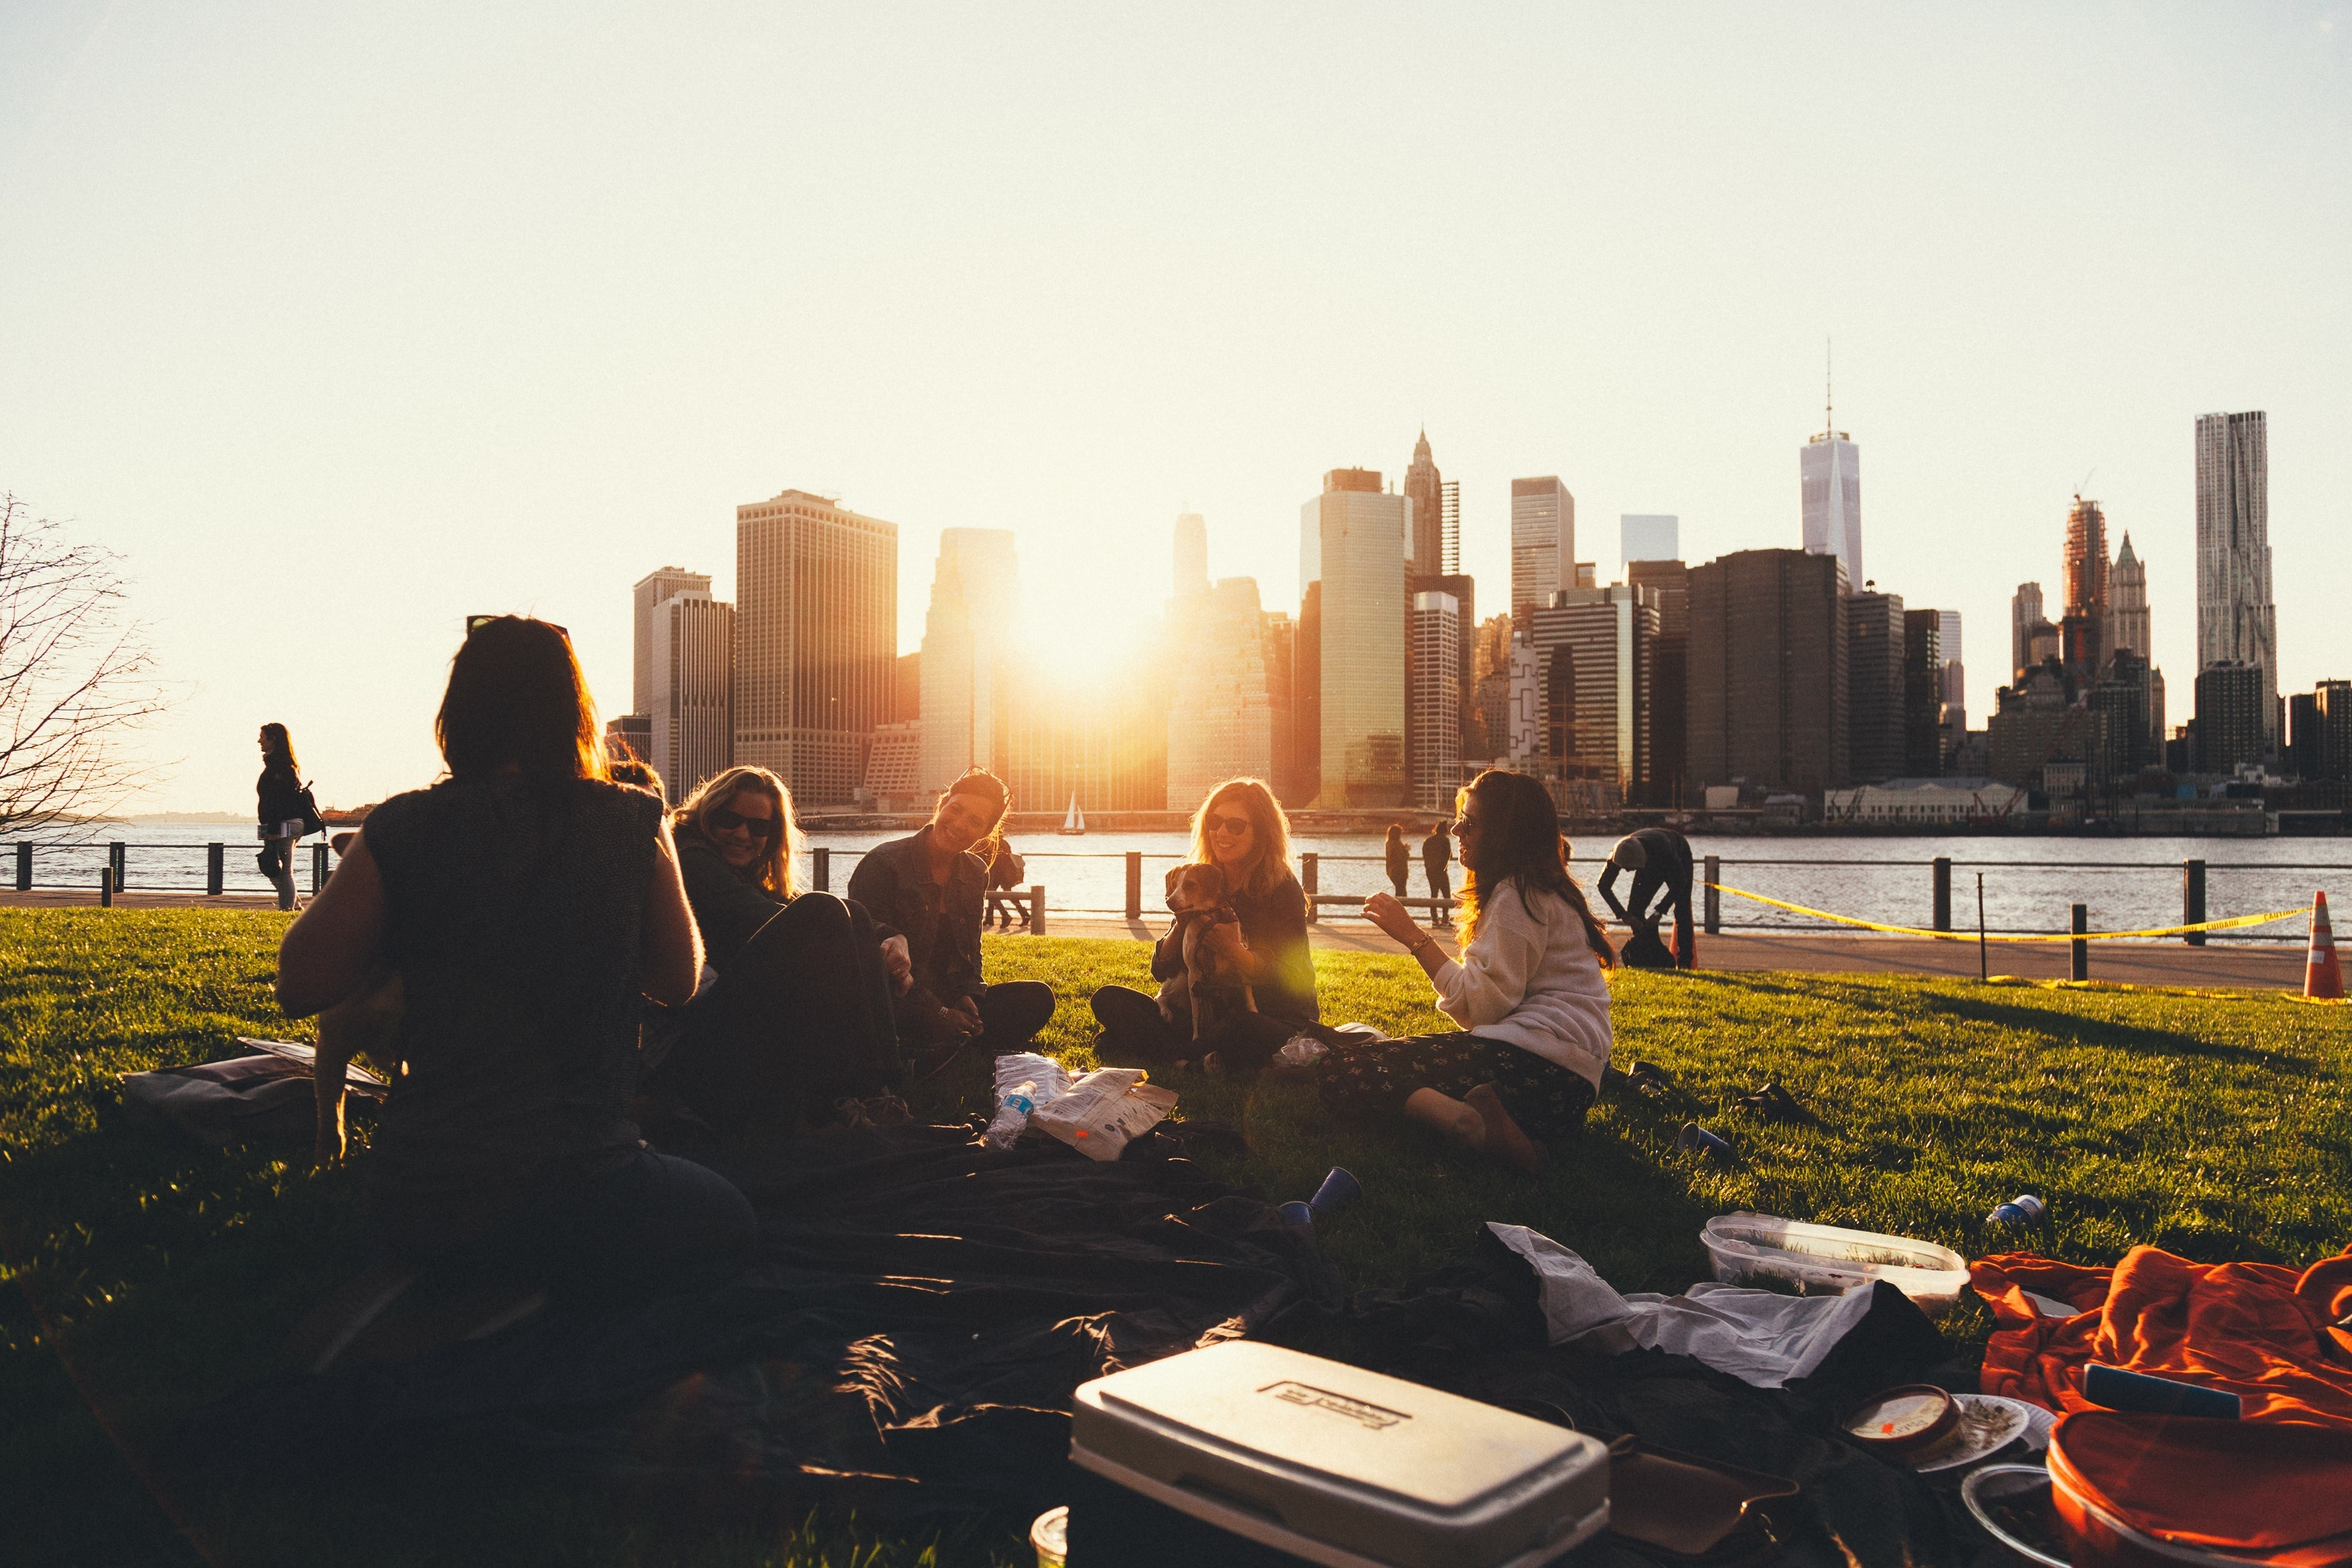 I Have No Desire To Make New Friends Right Now—Why That's Perfectly Okay